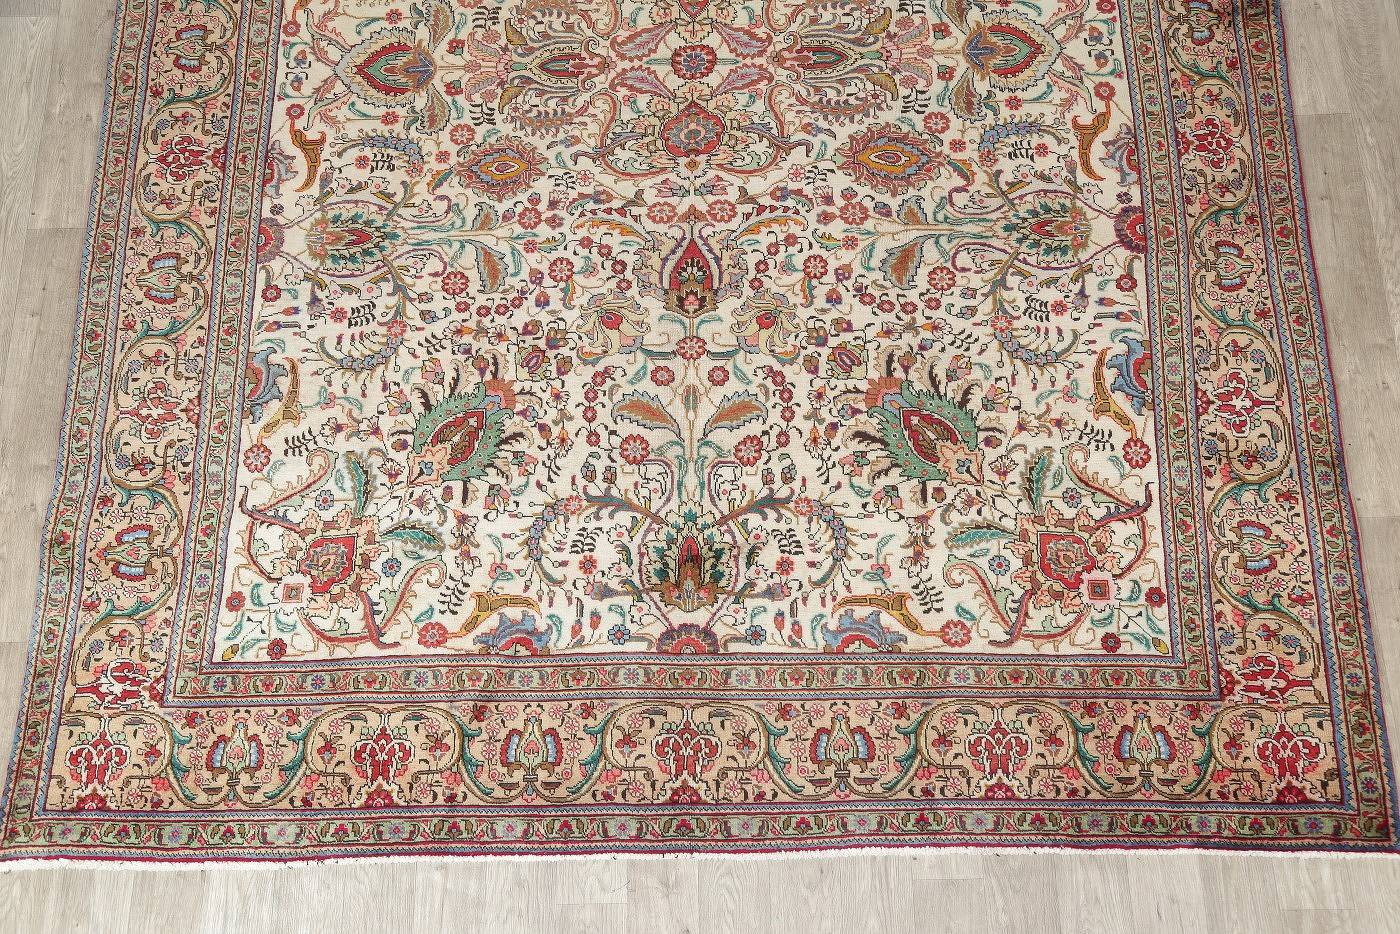 One-of-a-Kind All-Over Floral Tabriz Persian Hand-Knotted 9x12 Wool Area Rug